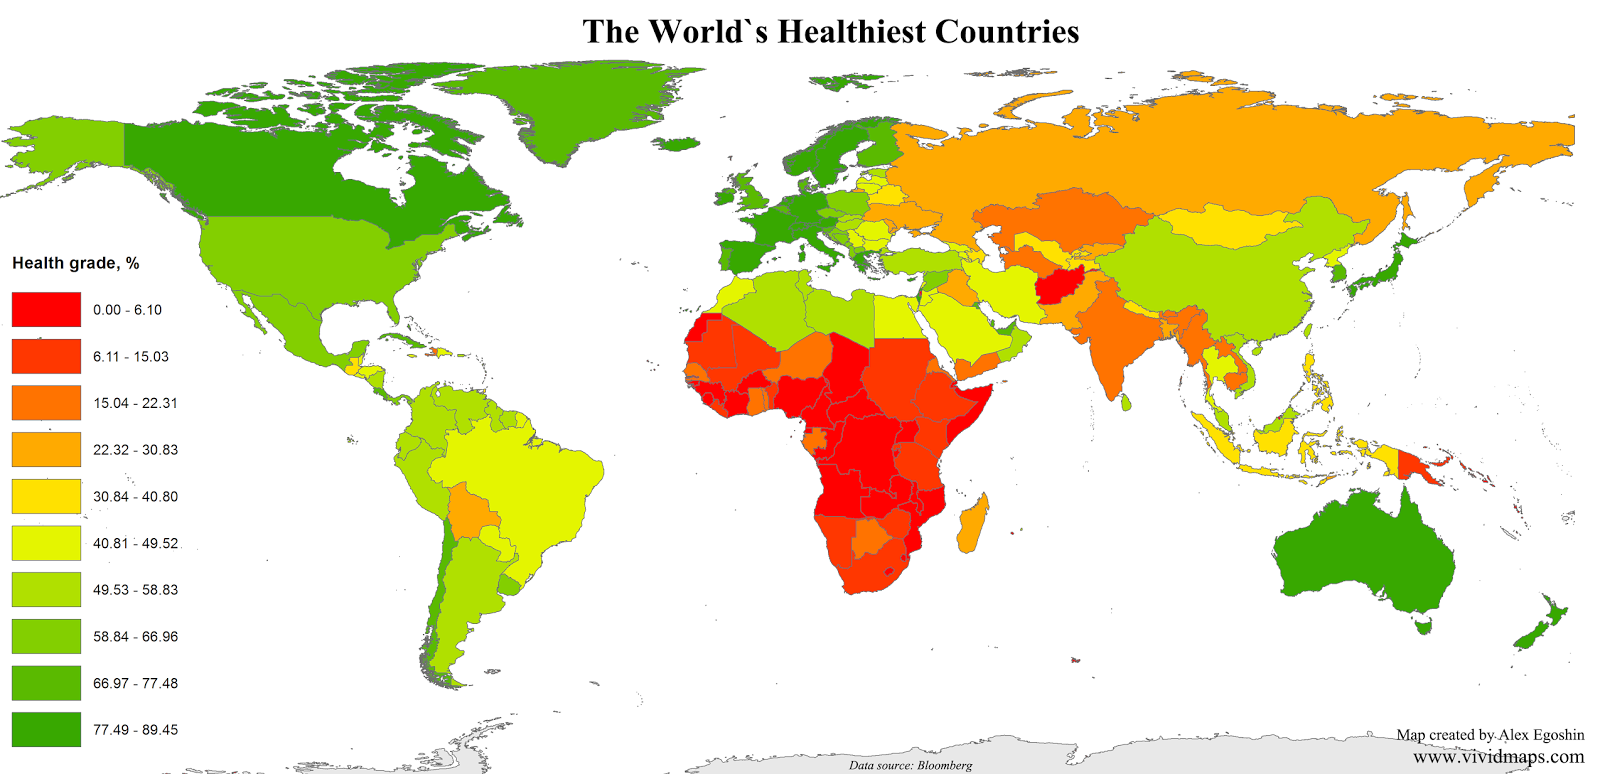 The World's healthiest countries